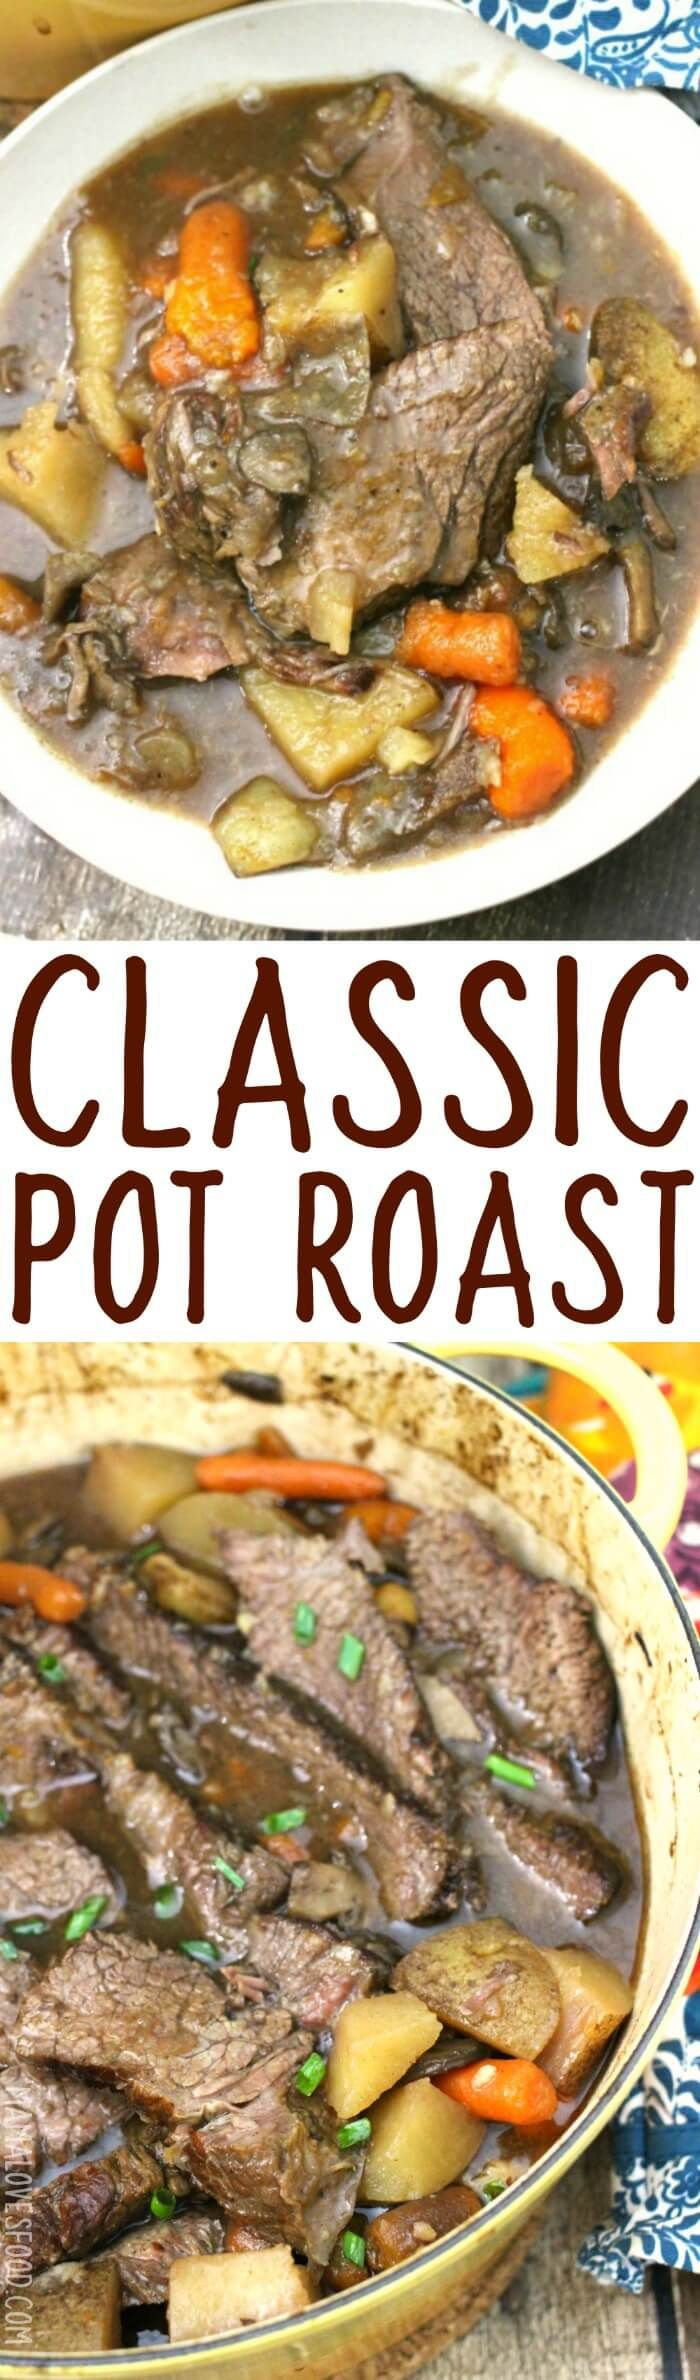 omg whole family loved! on the menu for next month too!!! - CLASSIC POT ROAST RECIPE